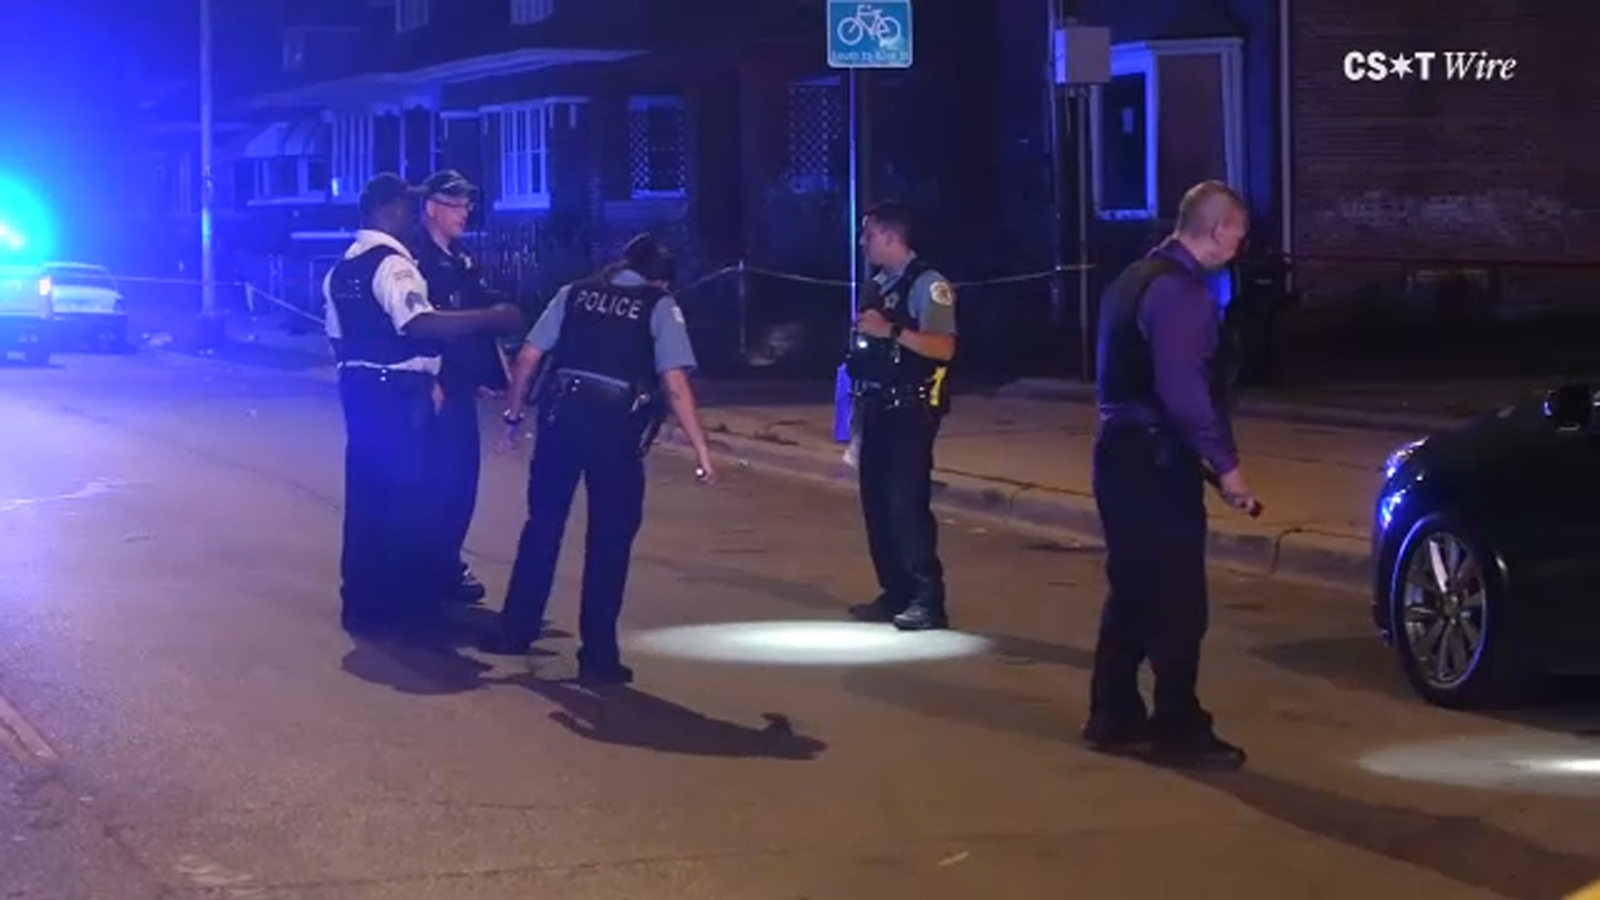 41 shot, 9 fatally, in Chicago weekend shootings